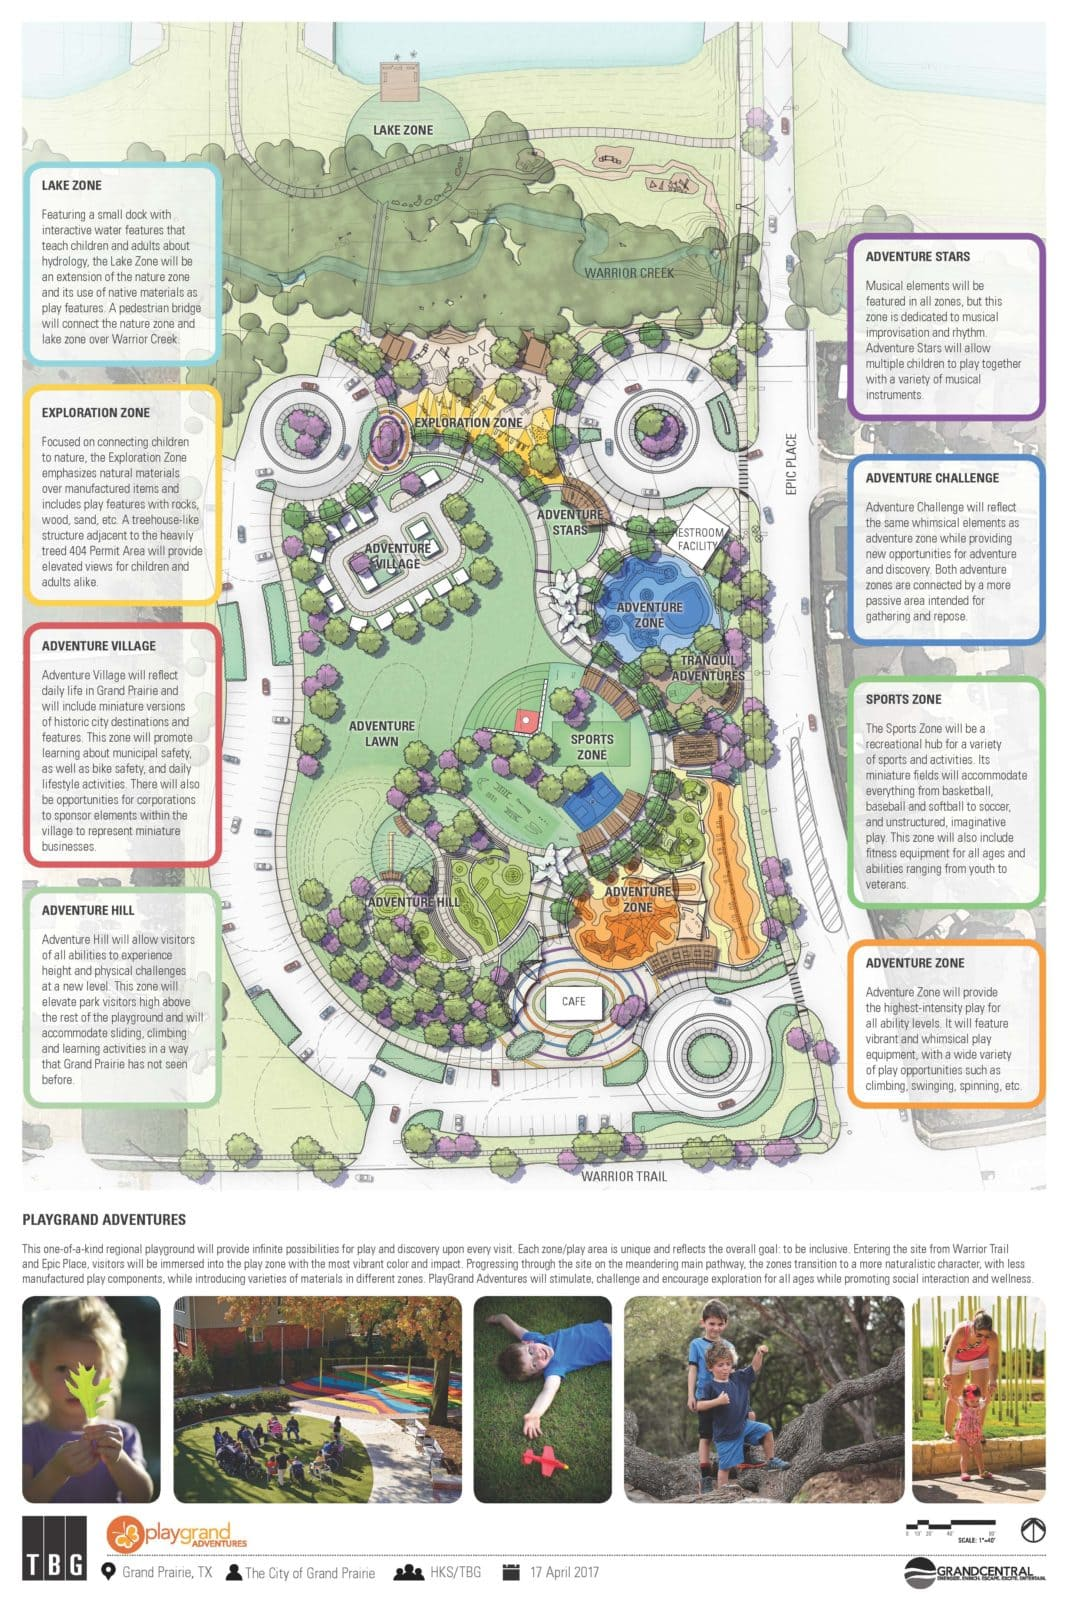 Grand Prairie Destination Playground Park Coming Soon - Focus Daily News